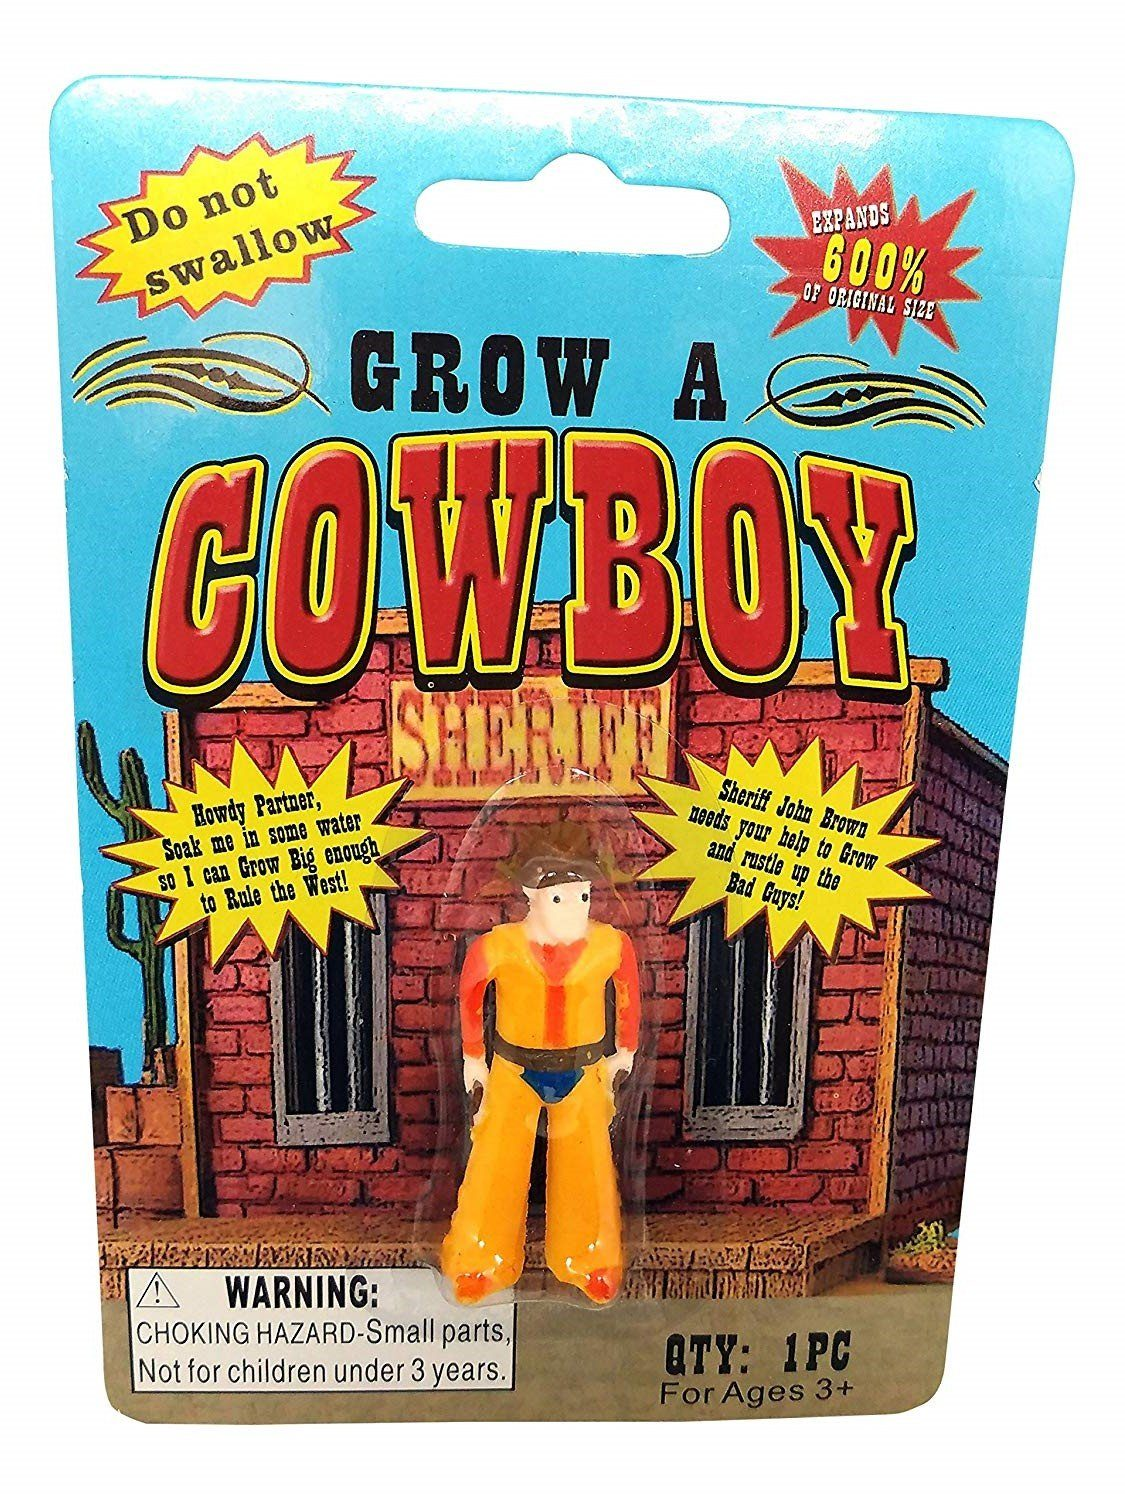 Grow a Cowboy Souvenir Hamilton Group